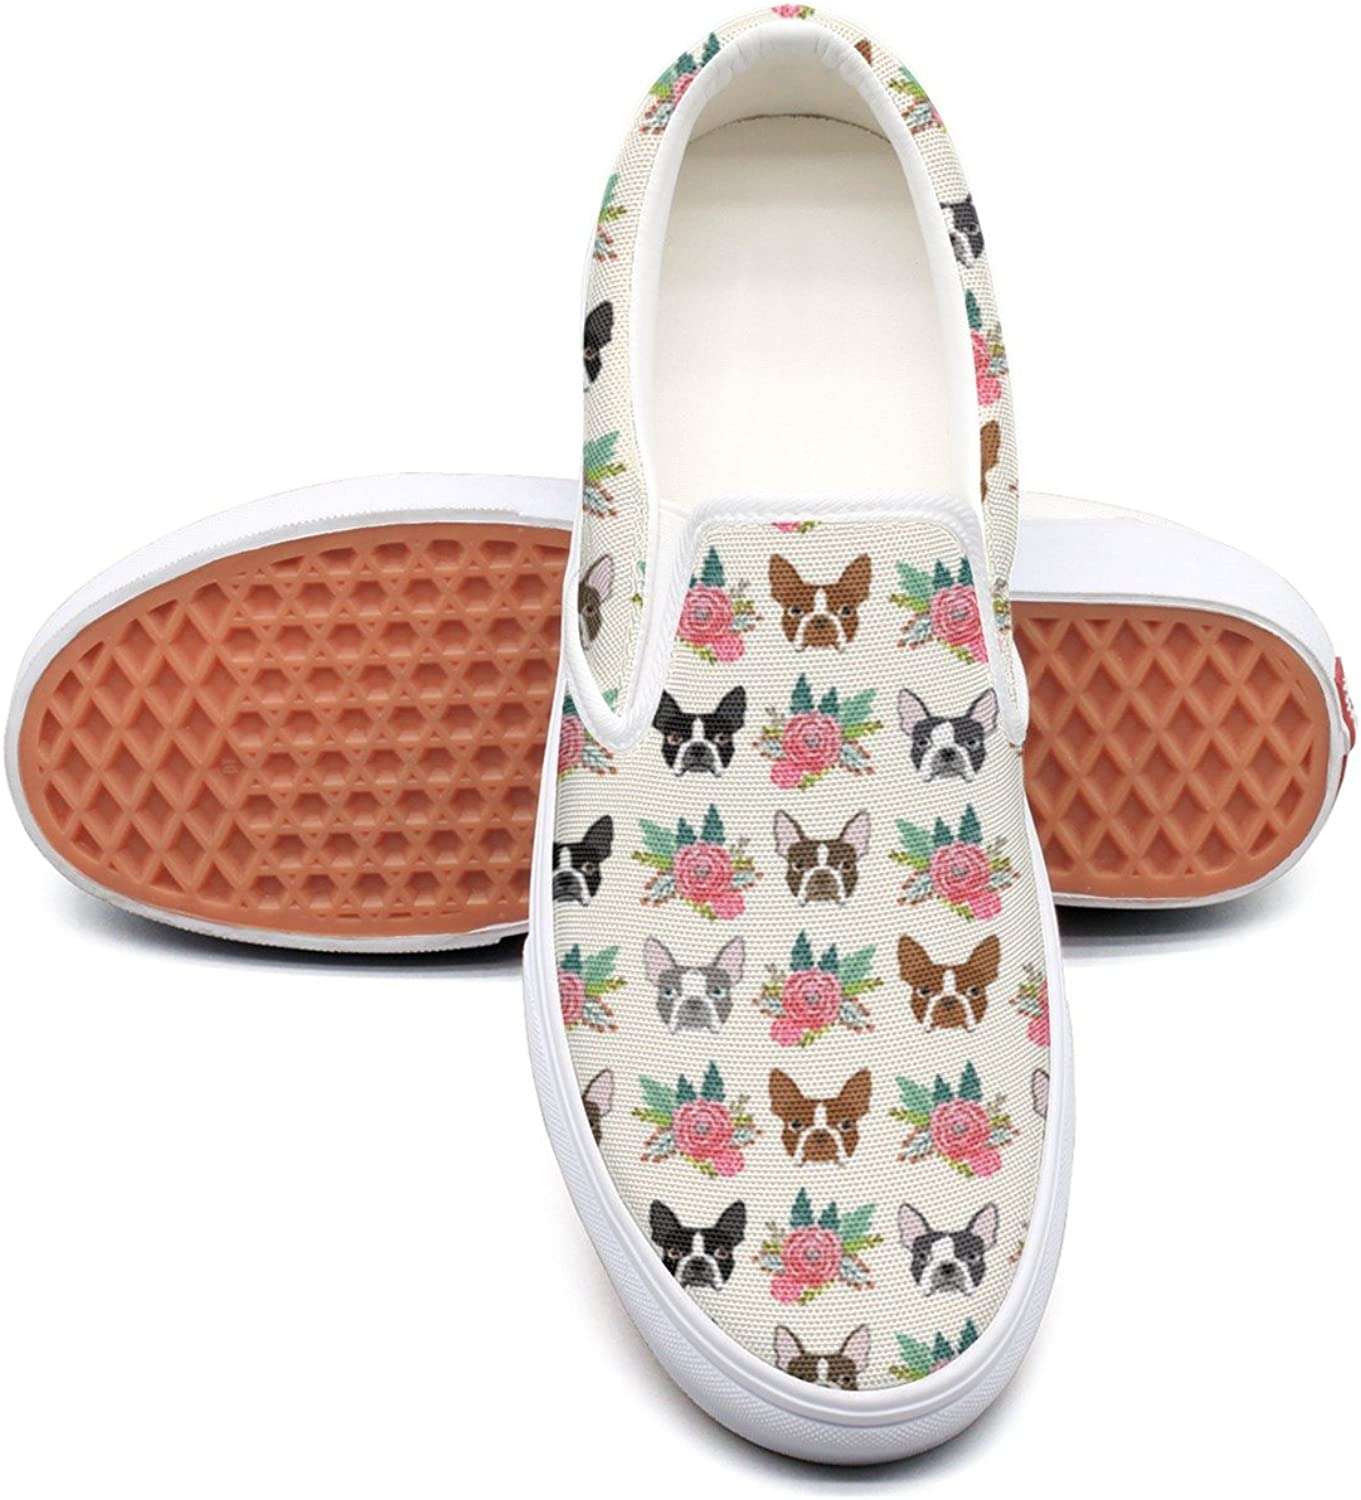 Hjkggd fgfds Casual Boston Terrier Vintage Flowers Women Girls Canvas shoes